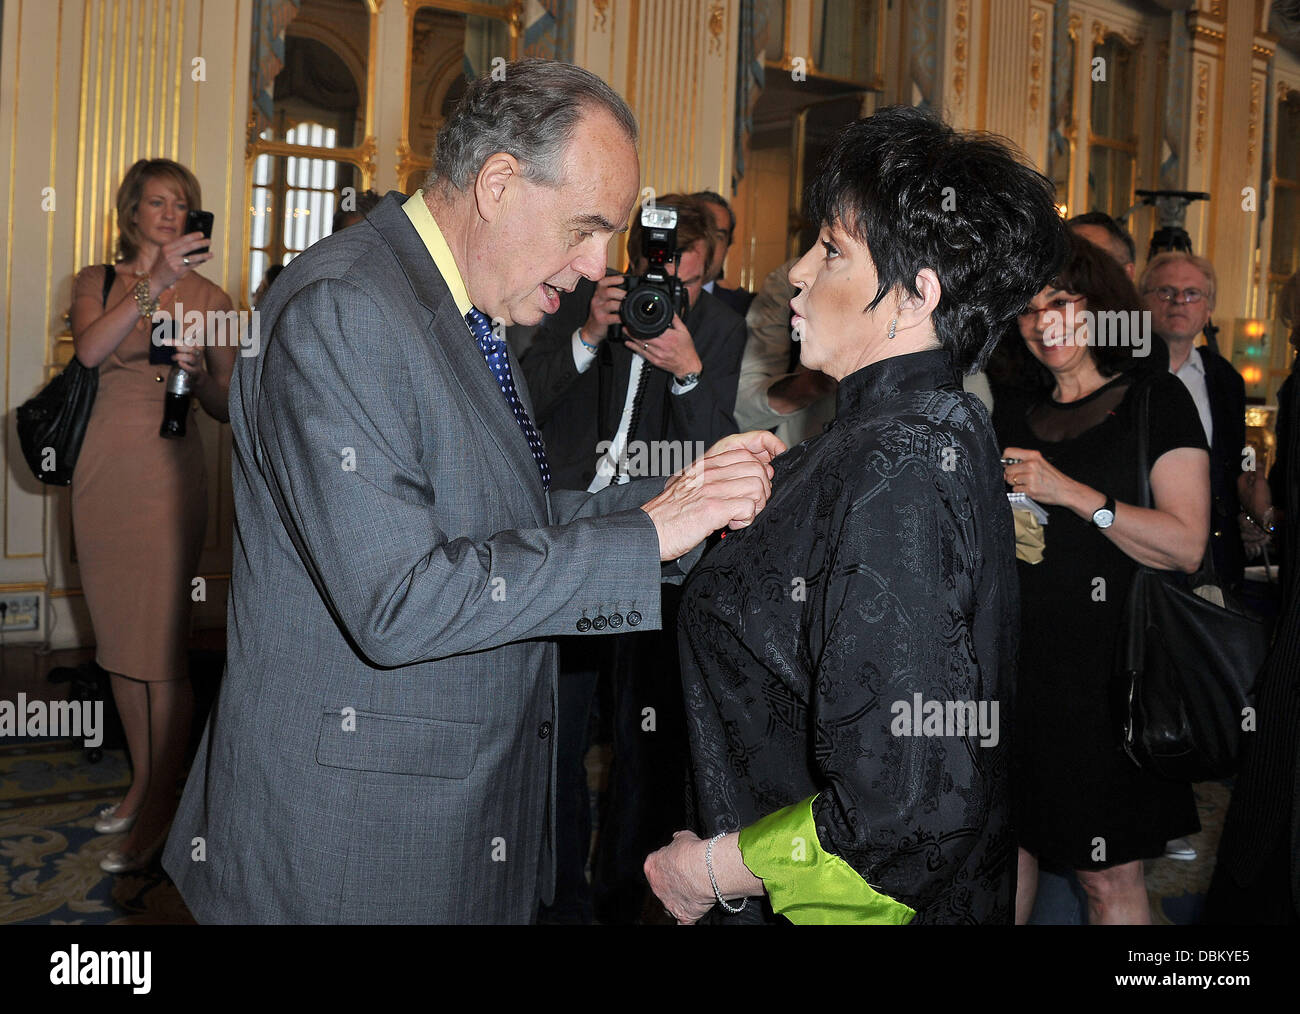 Frederic Mitterrand and Liza Minnelli Liza Minnelli is awarded with chevalier of the Legion of Honour (ChevalierStock Photo